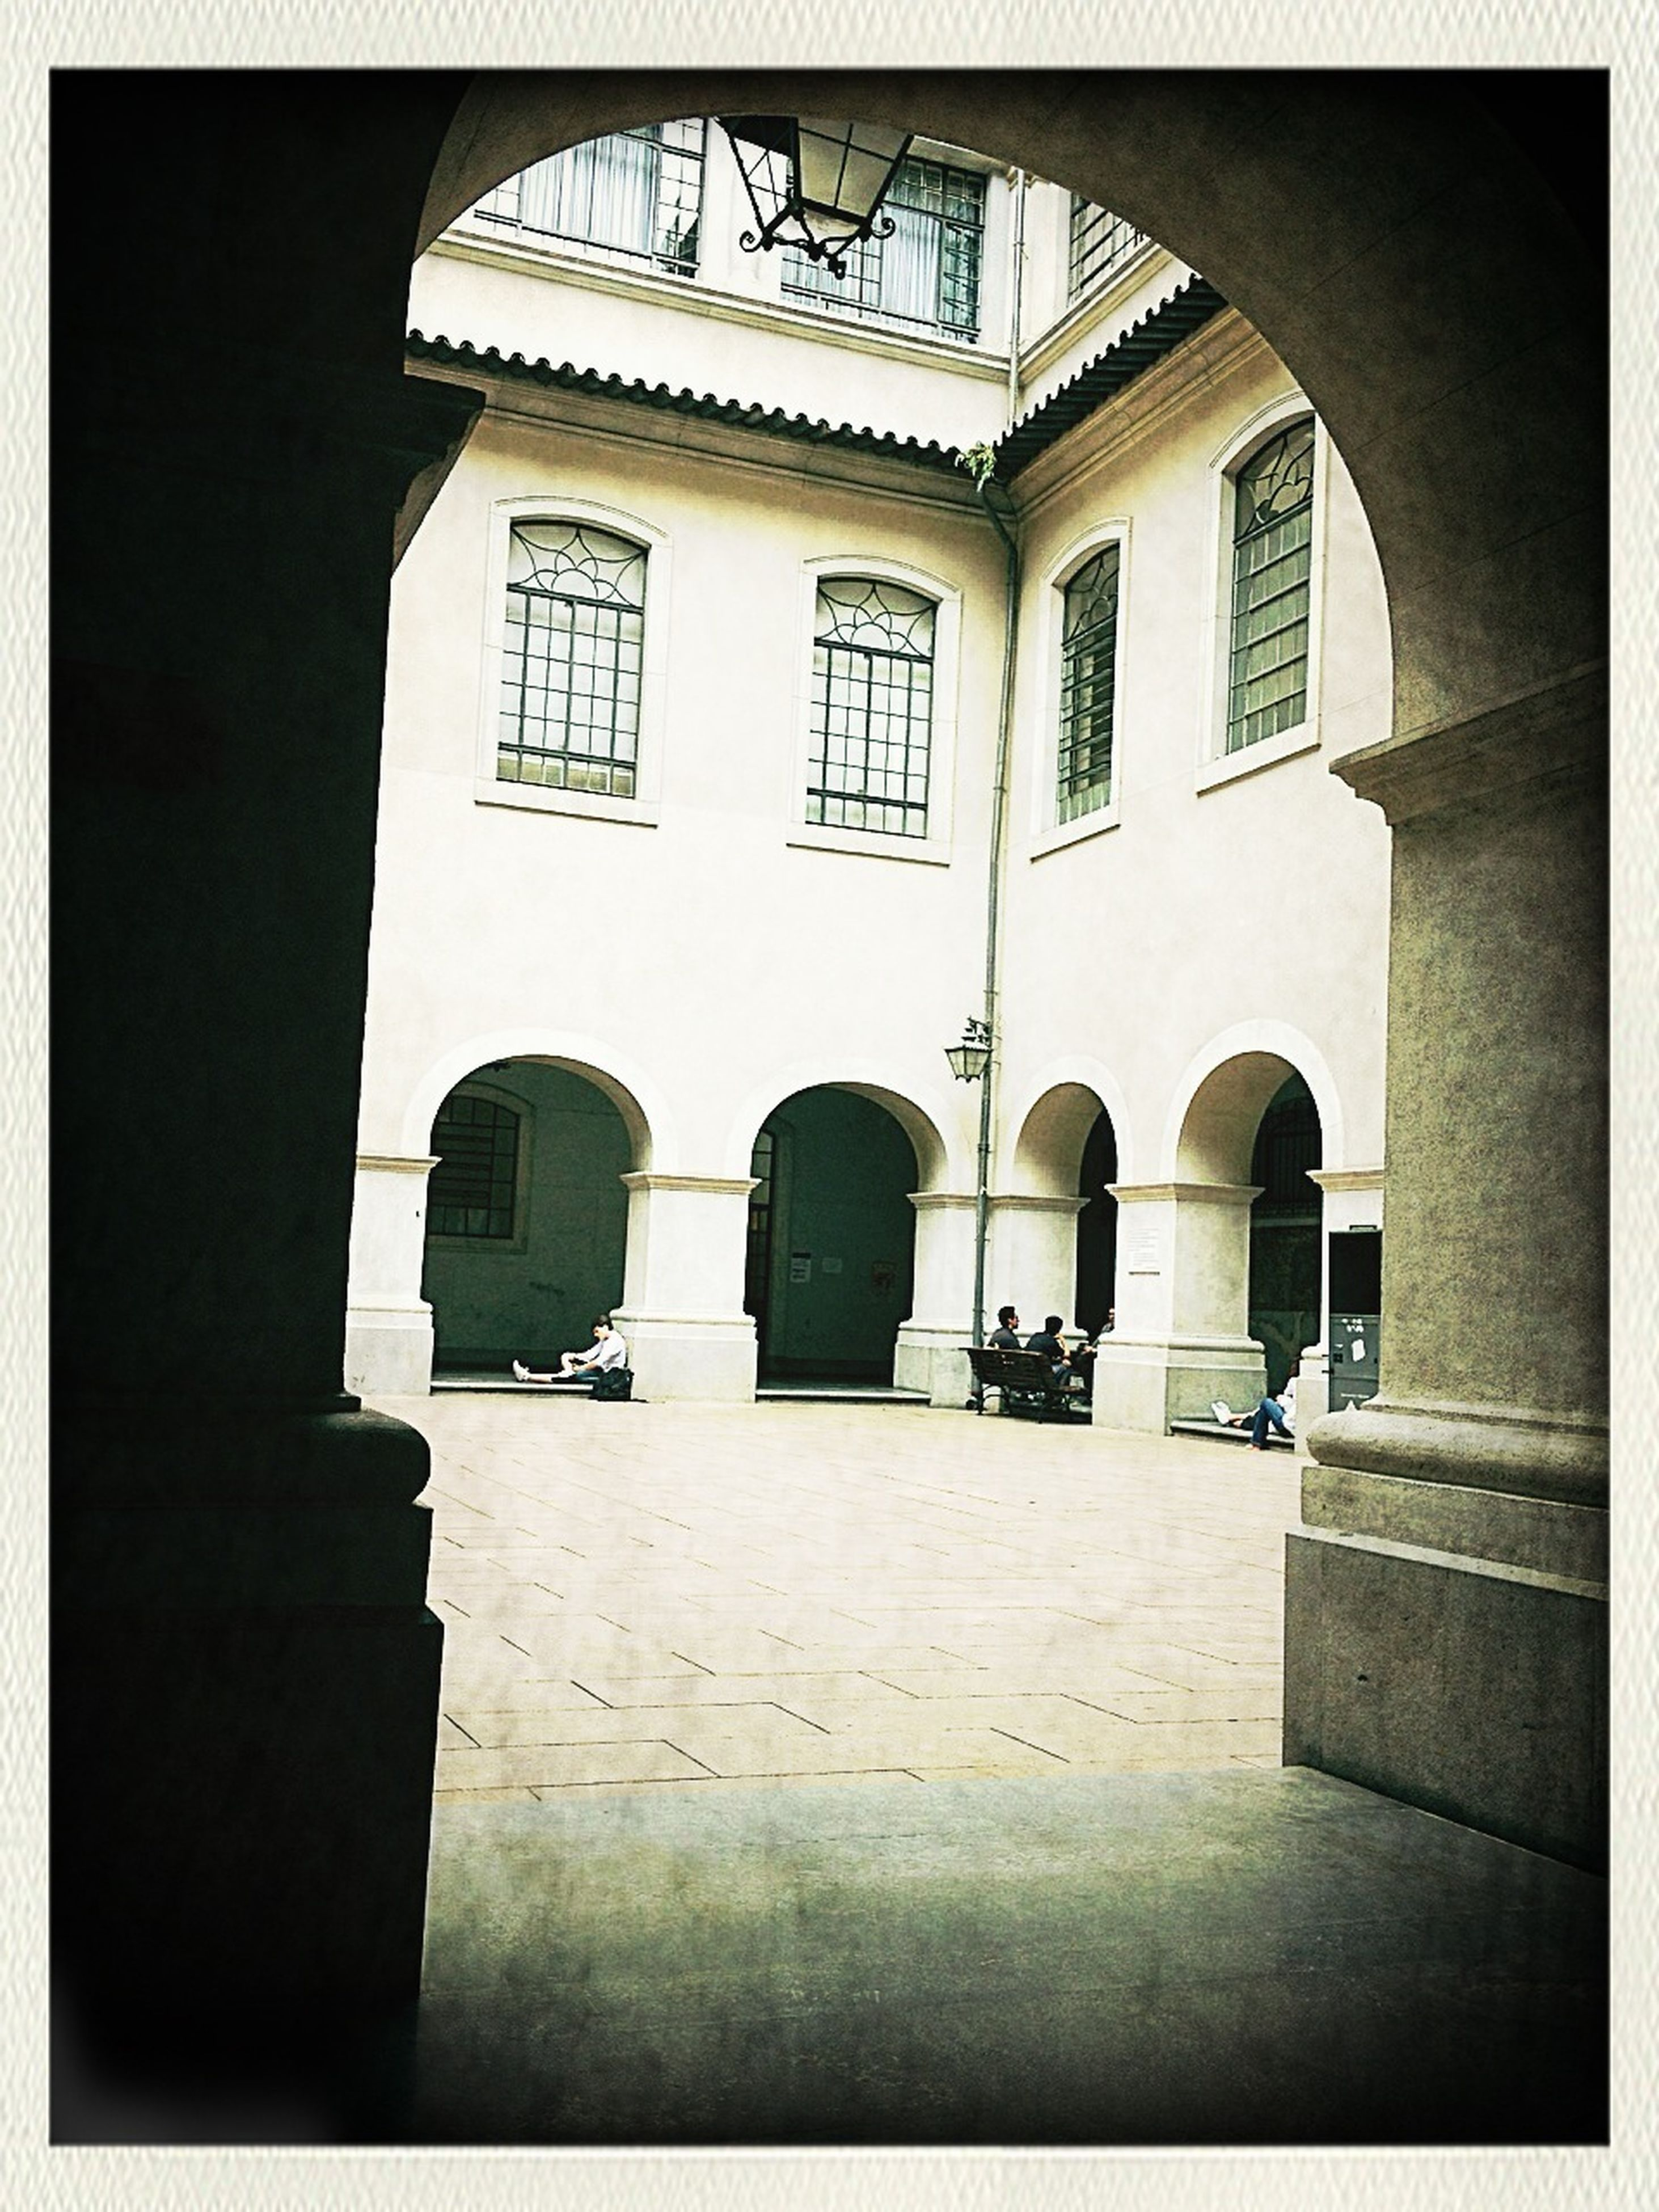 architecture, built structure, arch, building exterior, transfer print, entrance, window, auto post production filter, building, facade, archway, sunlight, courtyard, history, shadow, cobblestone, gate, day, architectural column, indoors